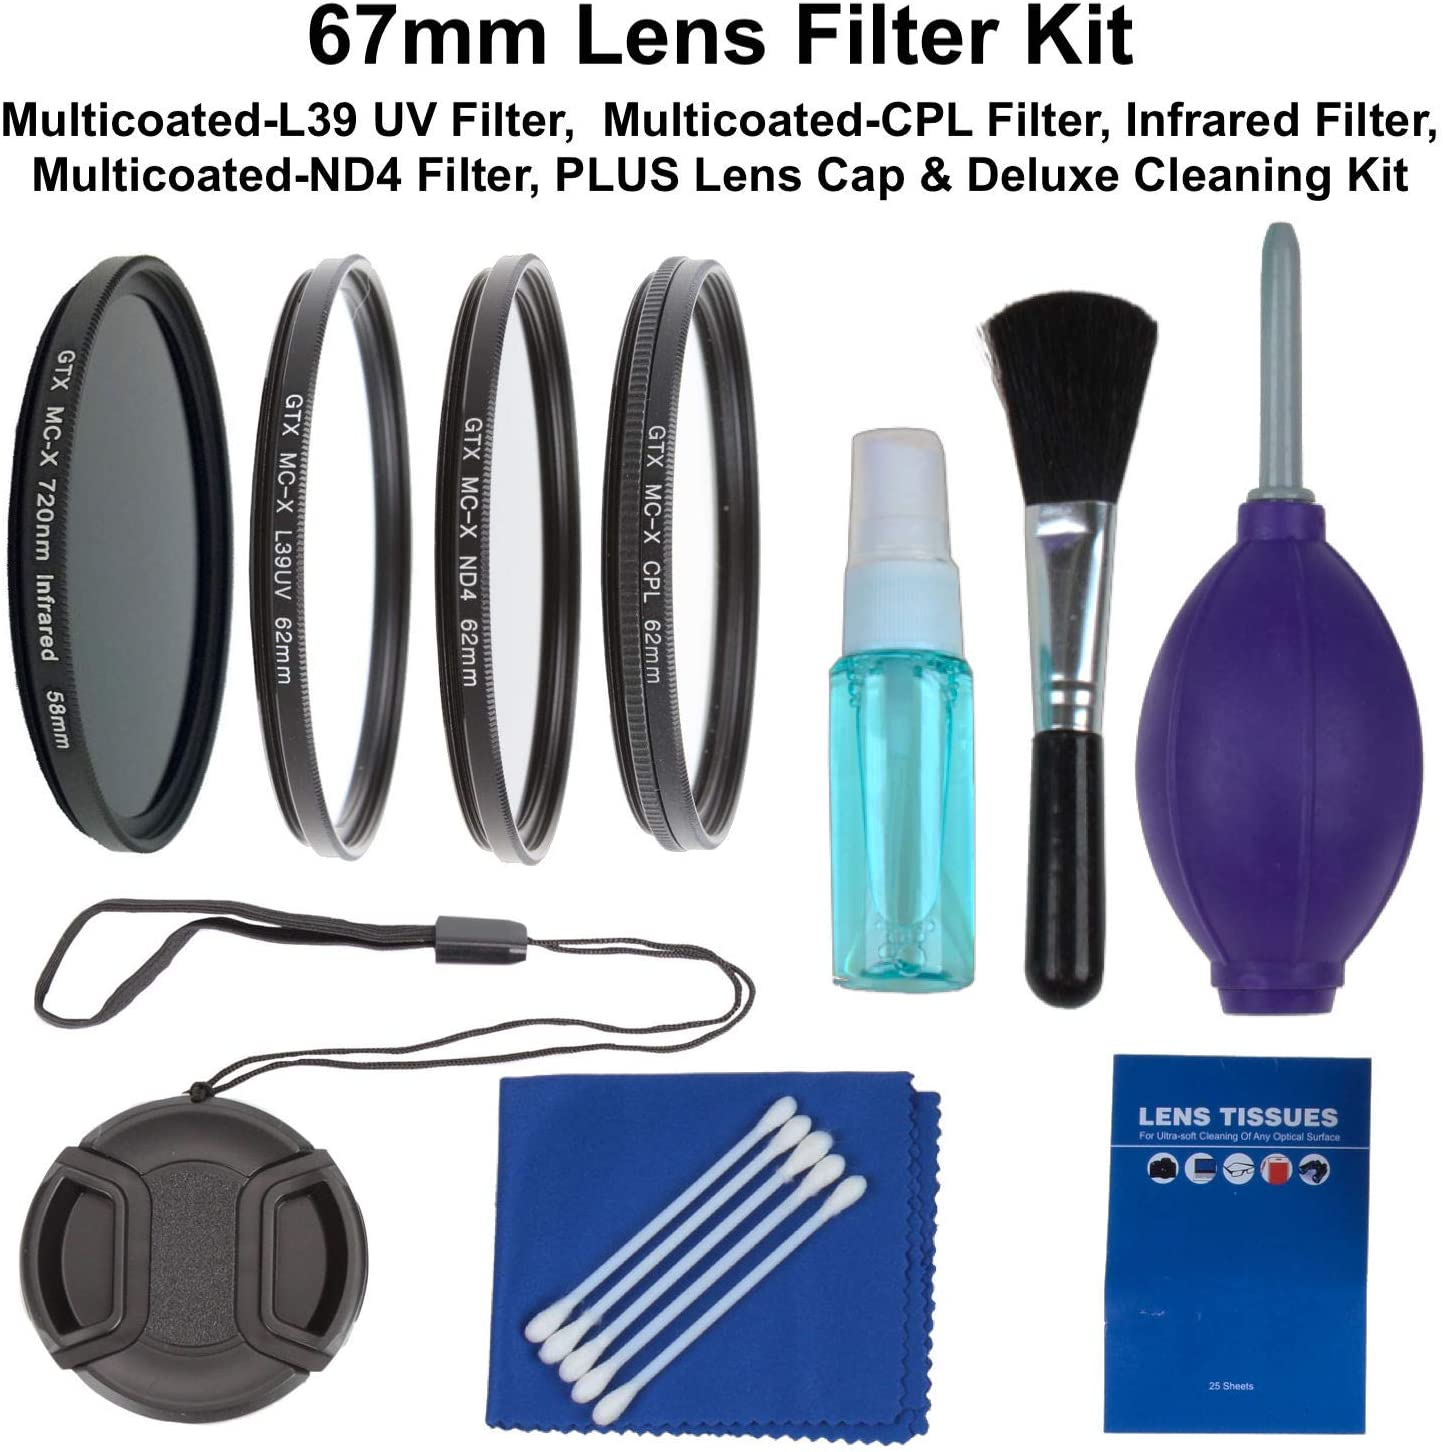 CPL Includes: Schott Glass Multicoated L39 UV Lens Cleaner Kit Sunset Foto67 mm Lens Filter and Accessory Kit IR Infrared 720nm Lens Cap and ND4 Lens Filter Set